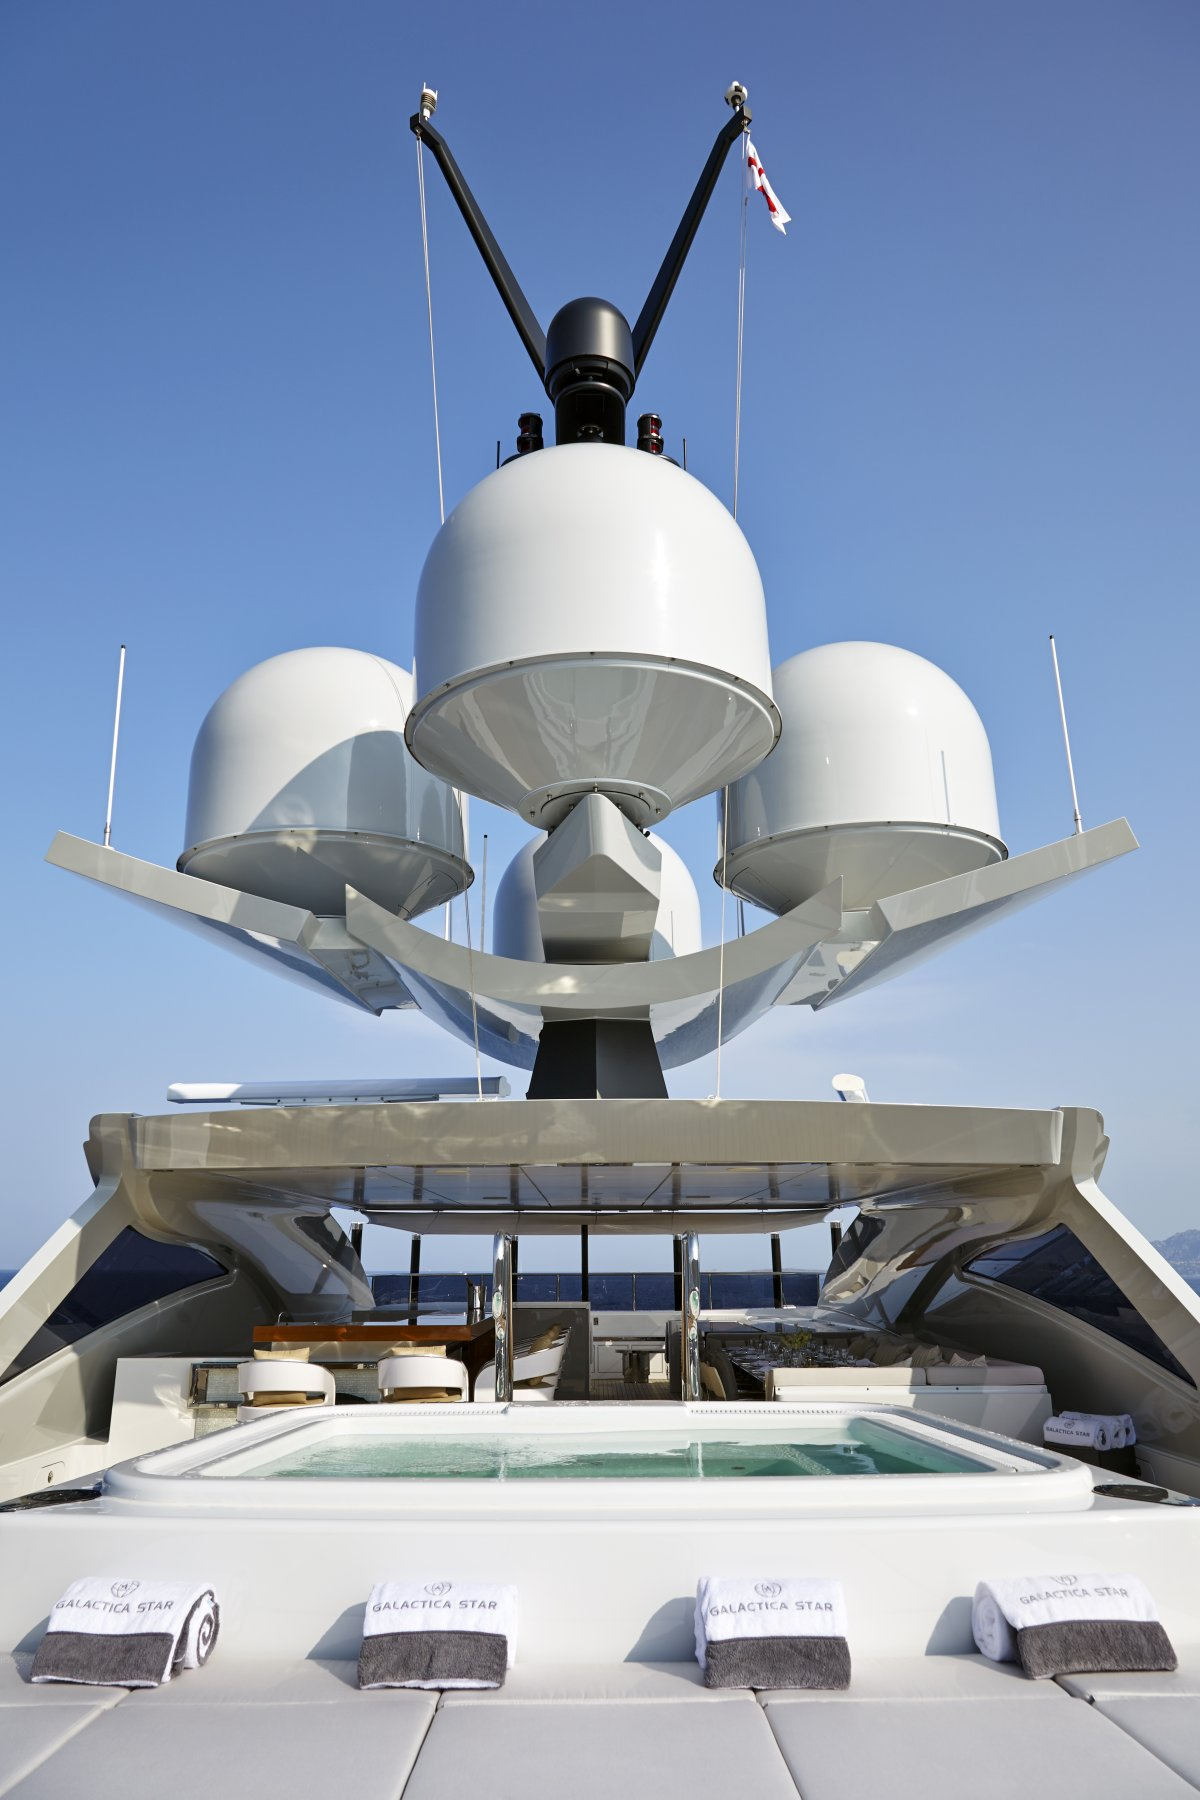 the-top-deck-includes-a-jacuzzi-bar-large-seating-area-and-viewing-platform-as-well-as-galactica-star-embroidered-towels